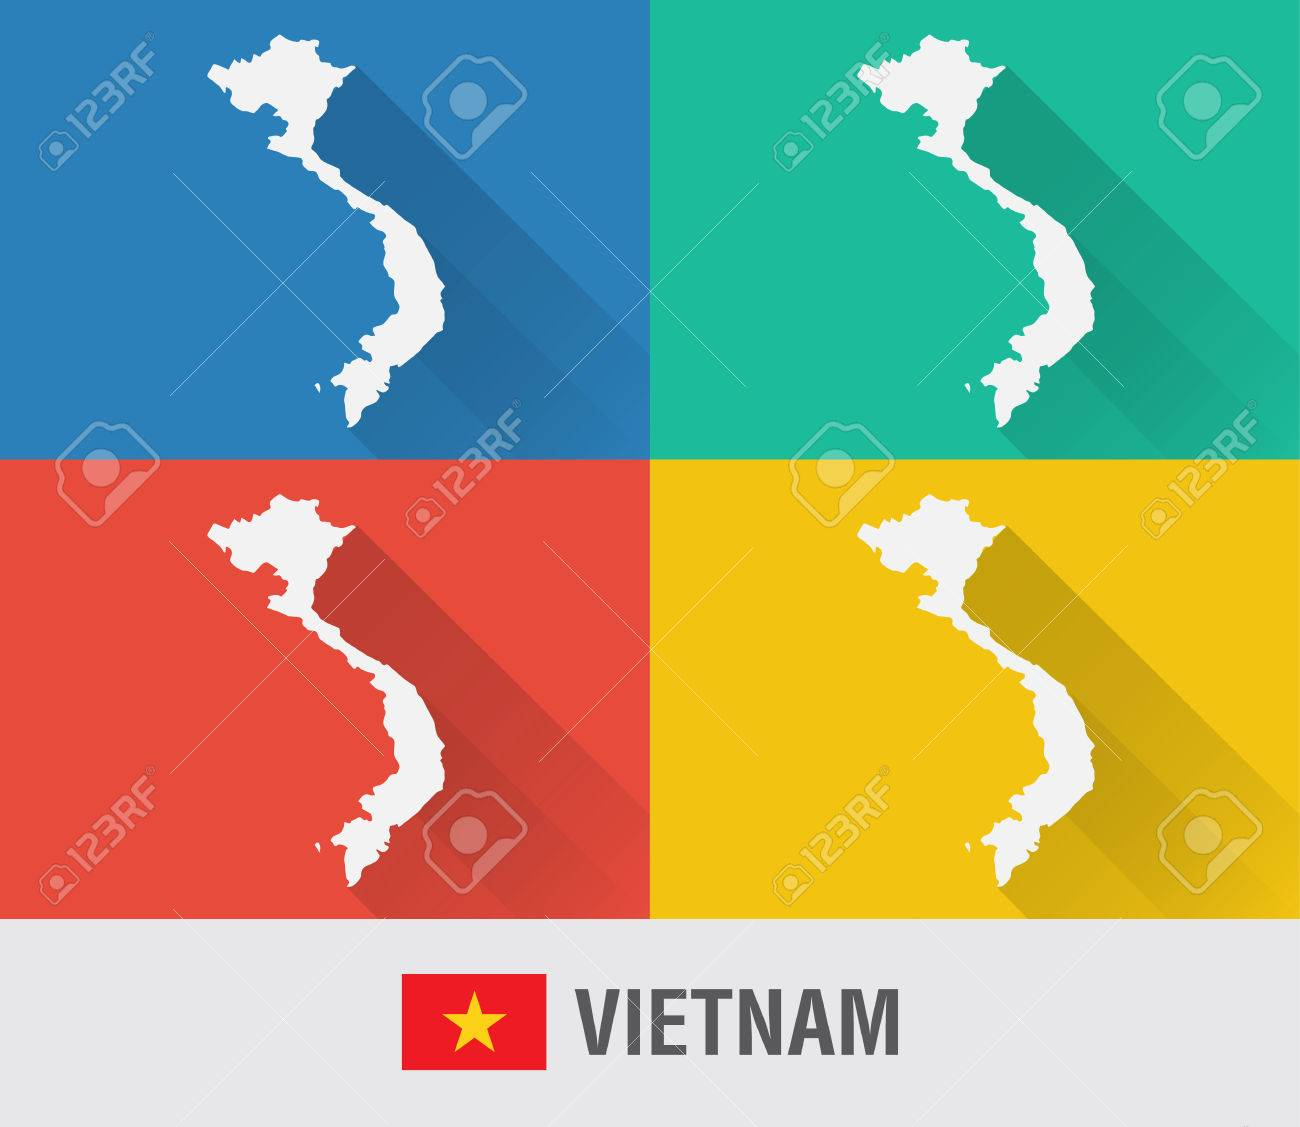 Vietnam world map in flat style with 4 colors modern map design vector vietnam world map in flat style with 4 colors modern map design gumiabroncs Images